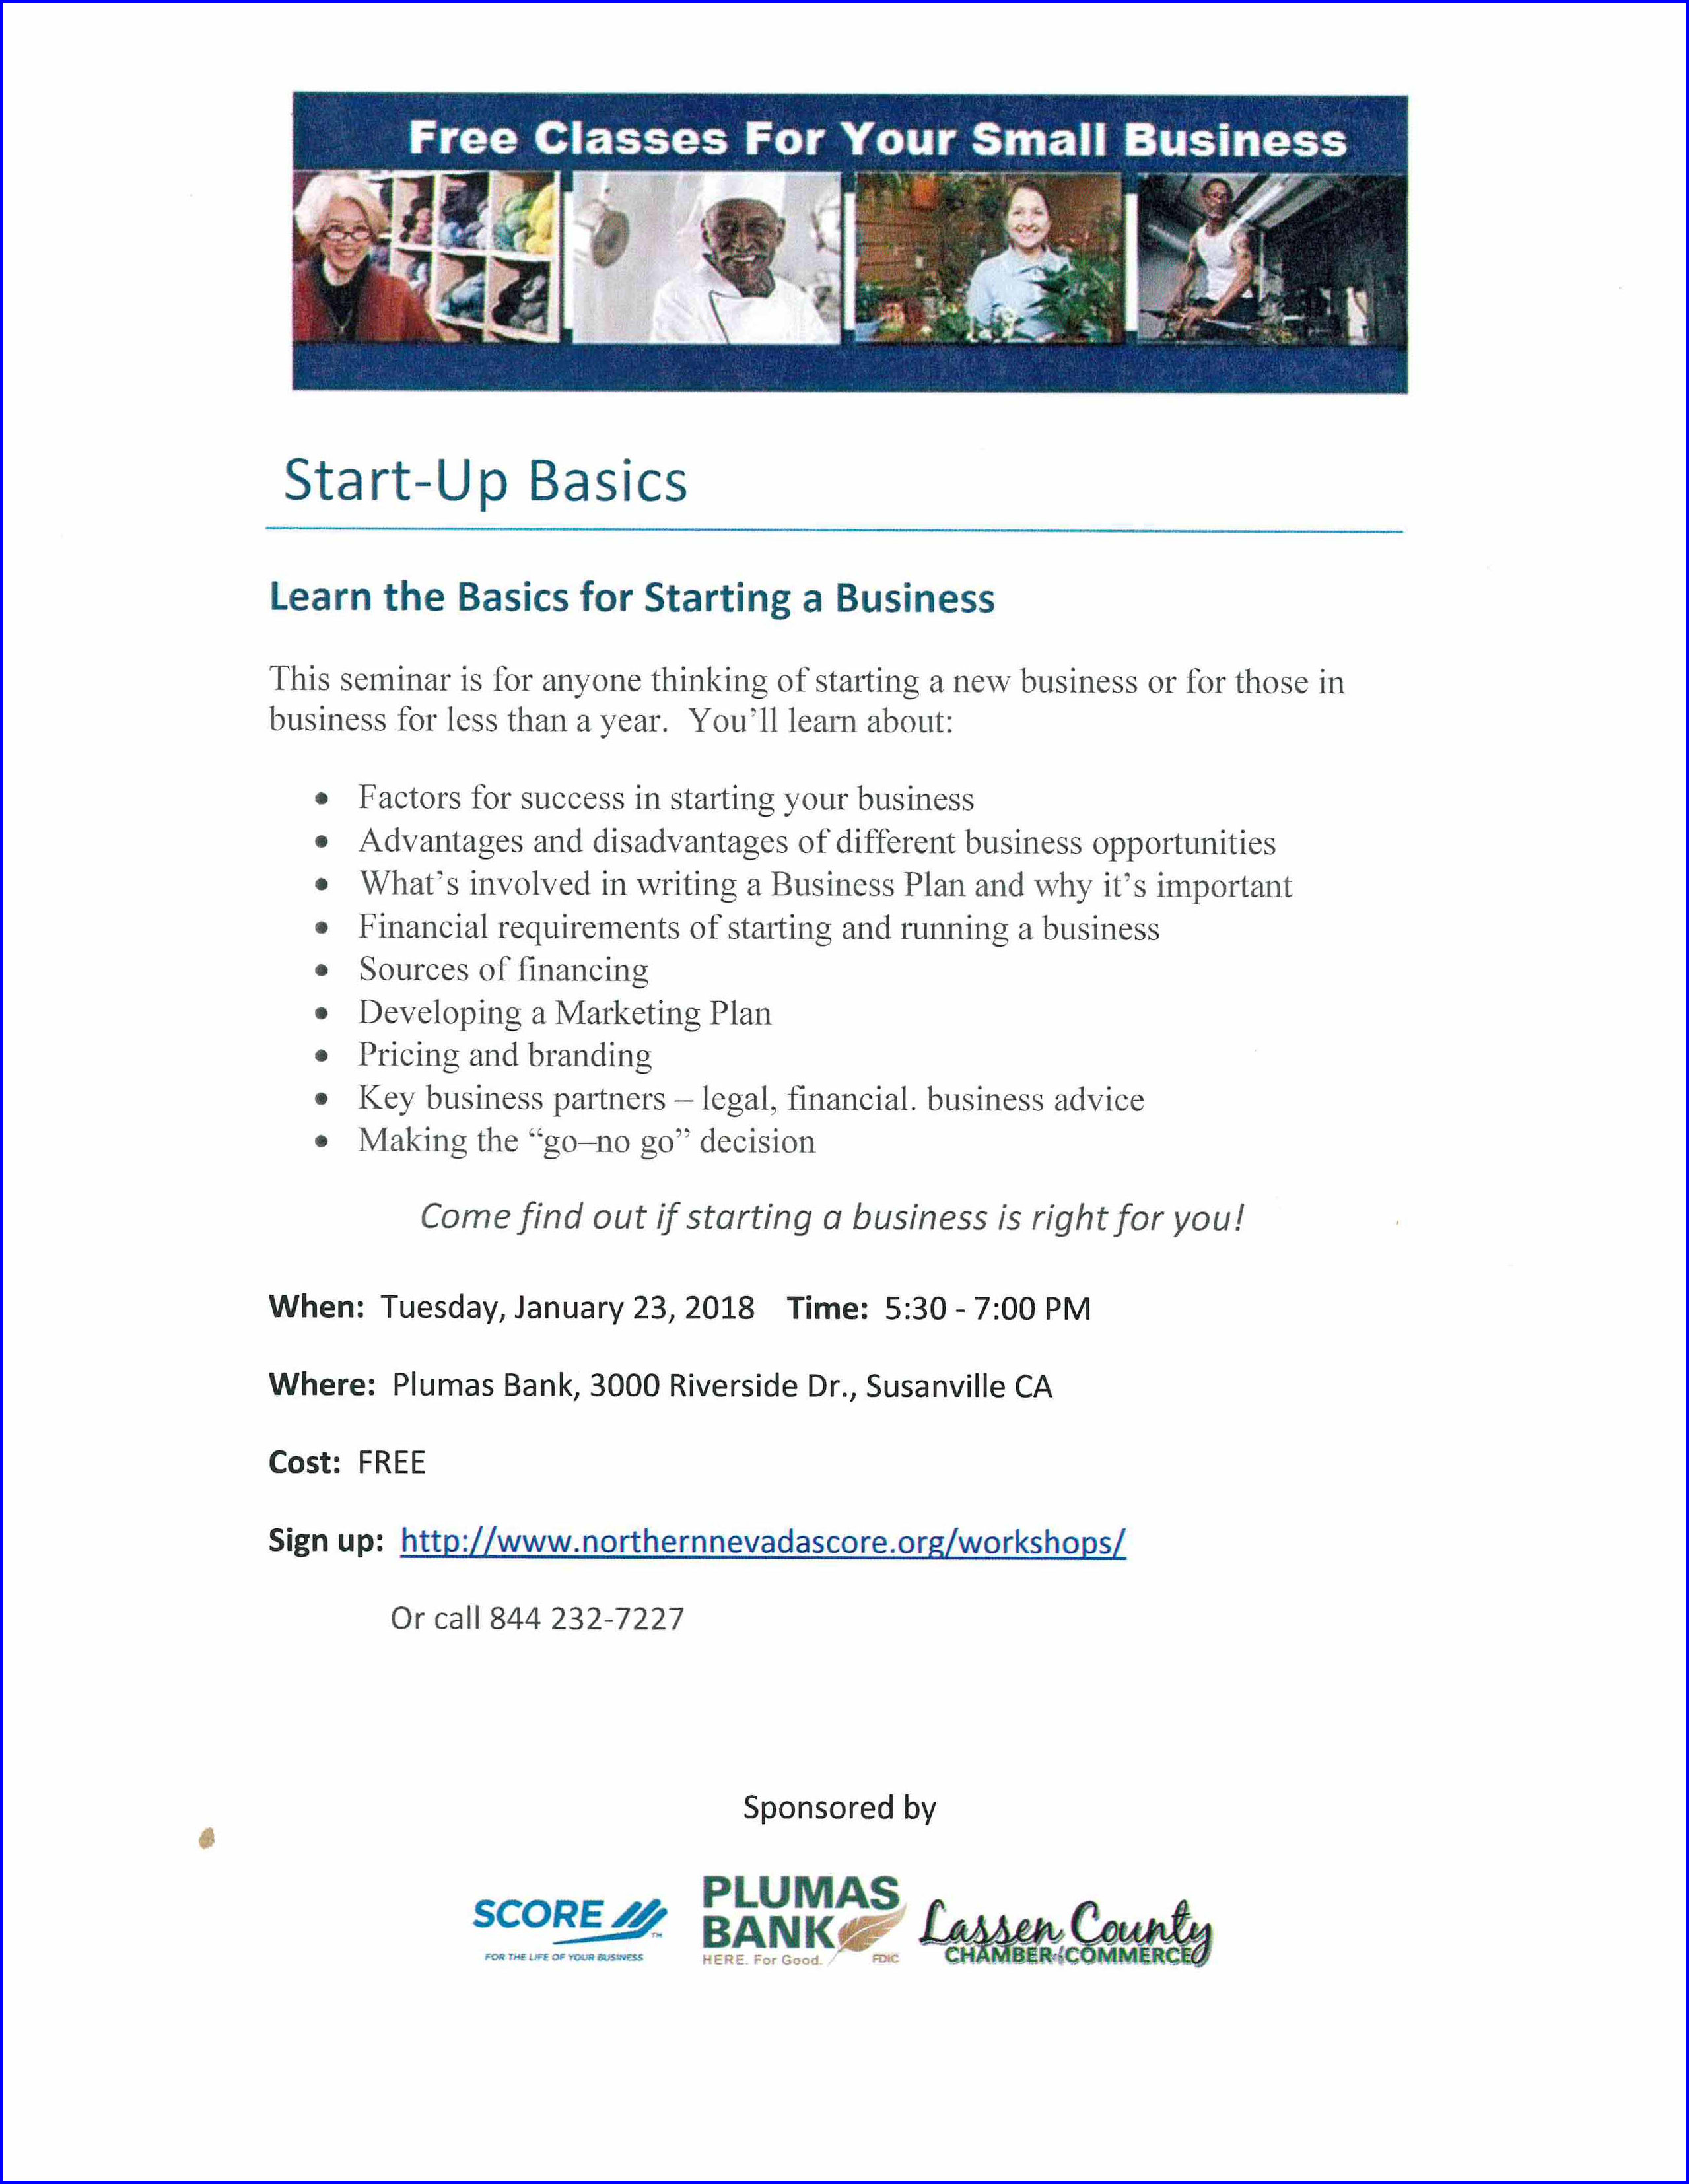 Free Classes for Your Small Business